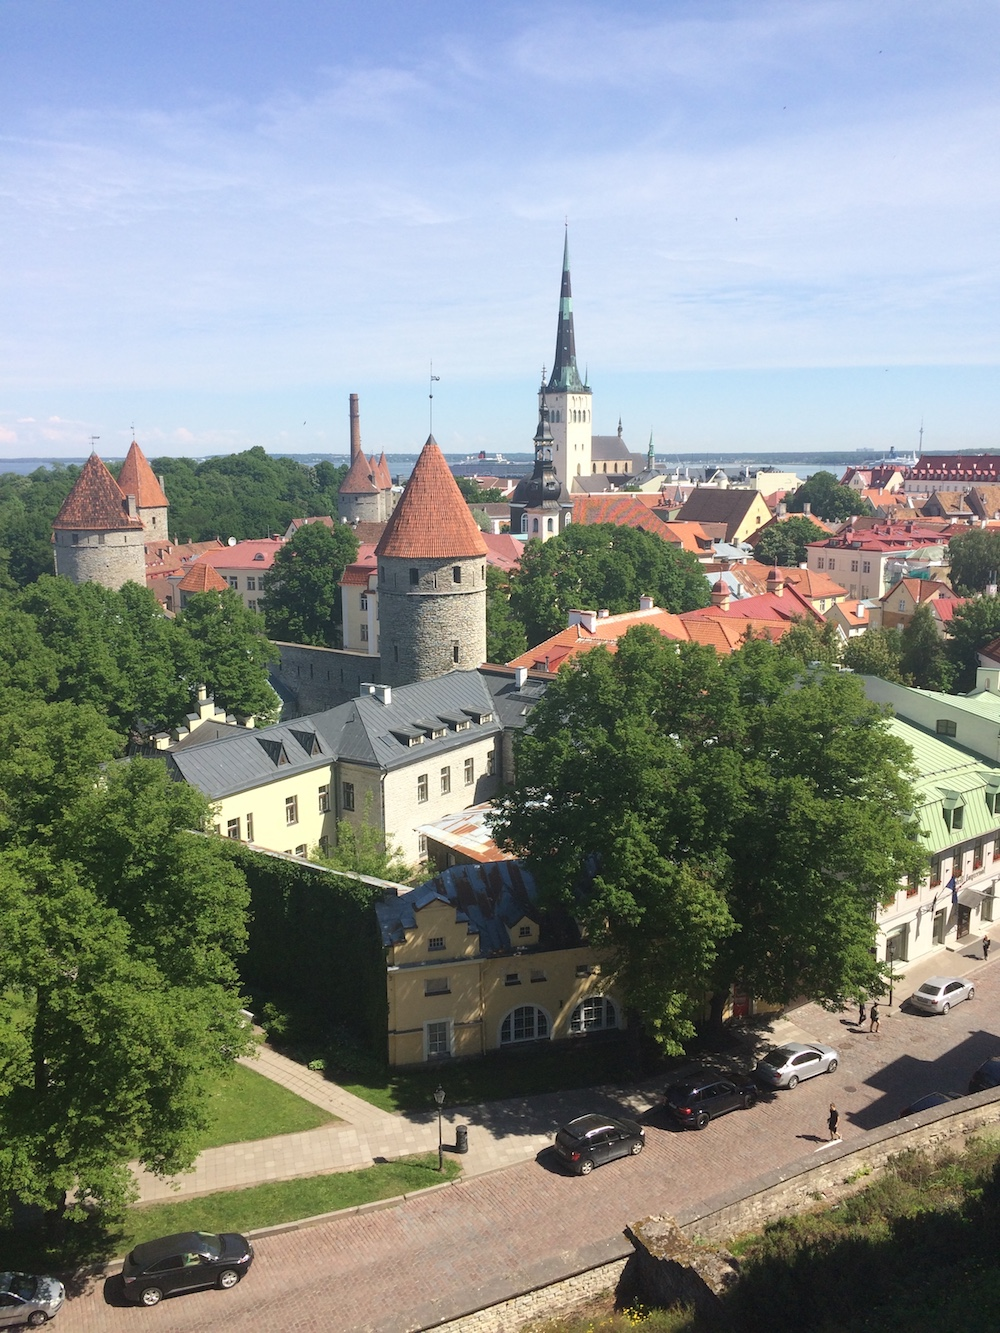 The old town of Tallinn.